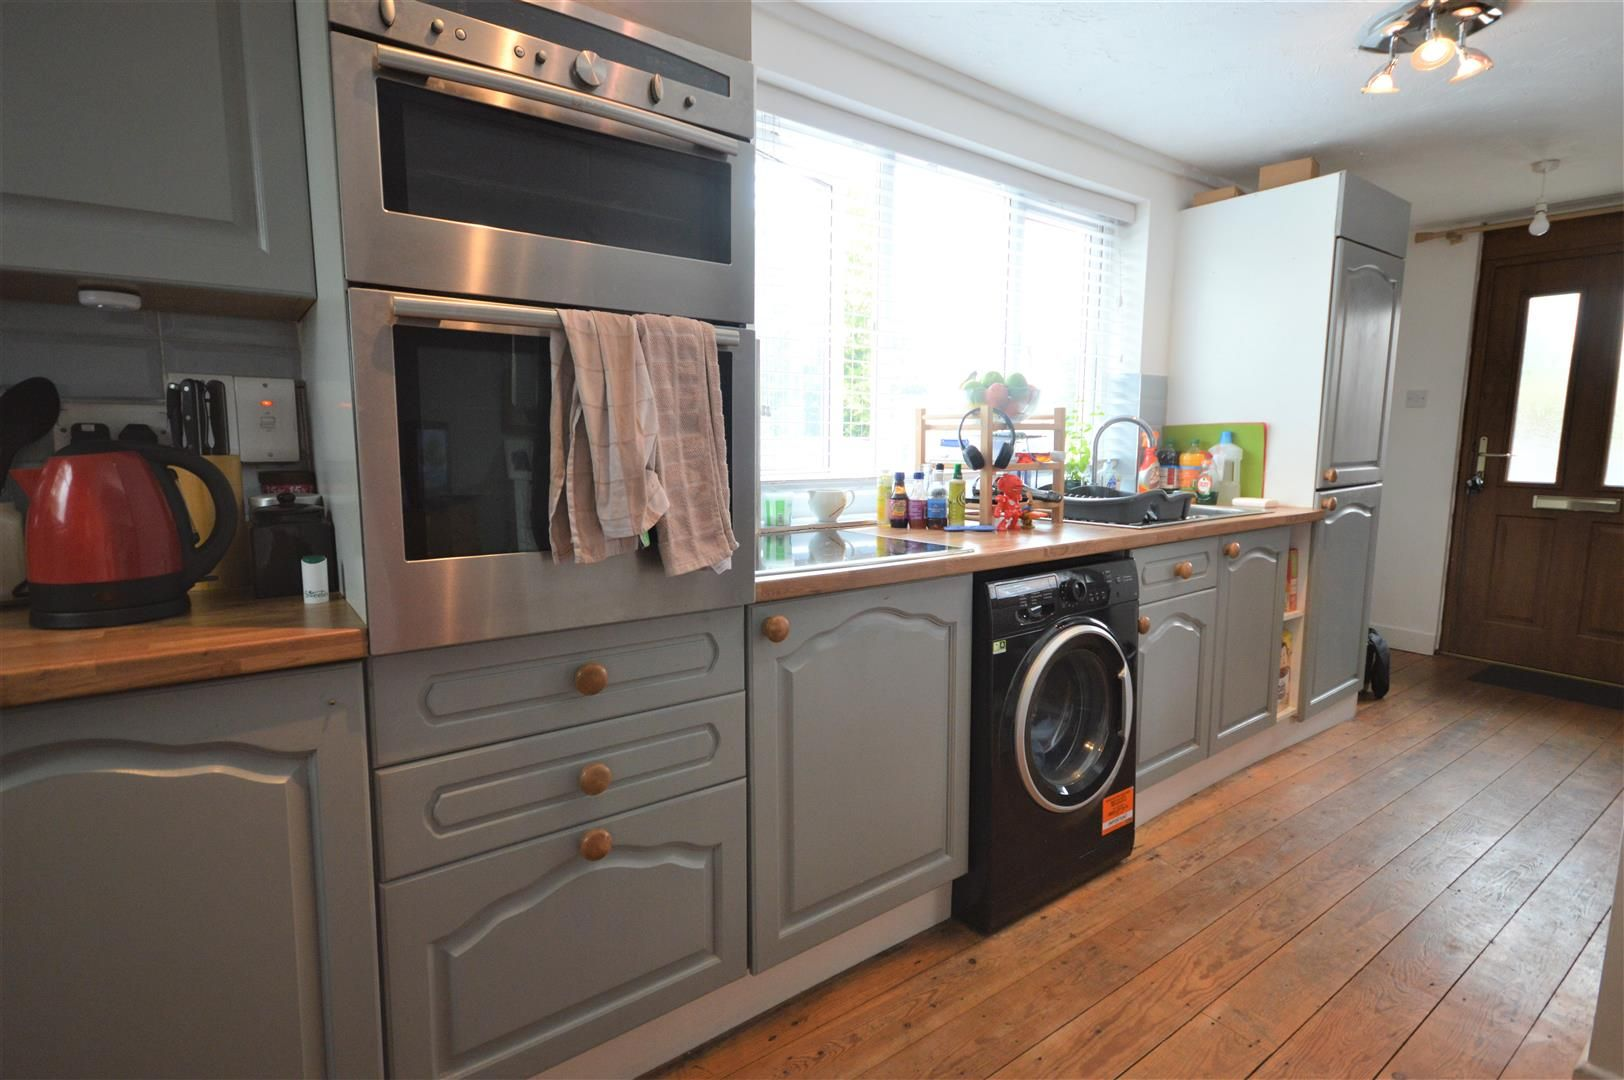 1 bed semi-detached for sale in Leominster 5